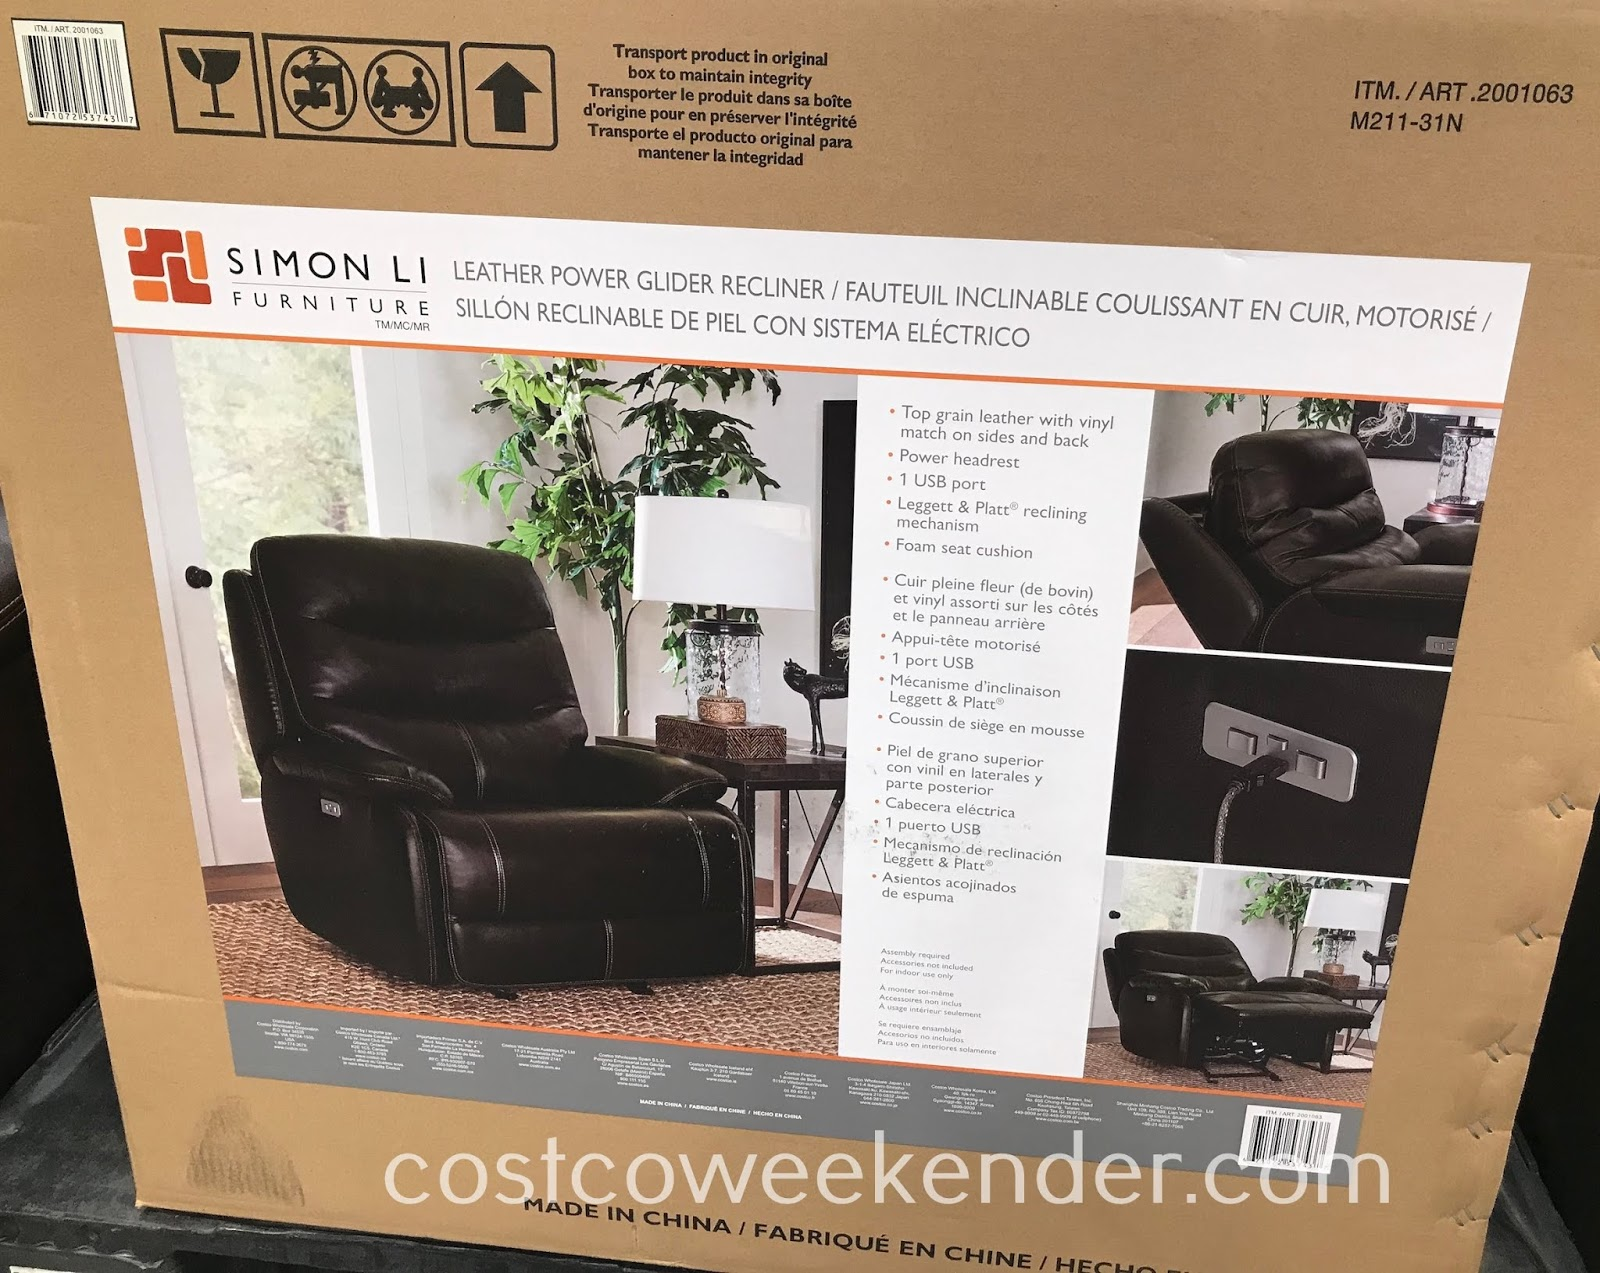 Costco 2001063 - Simon Li Leather Power Glider Recliner: your